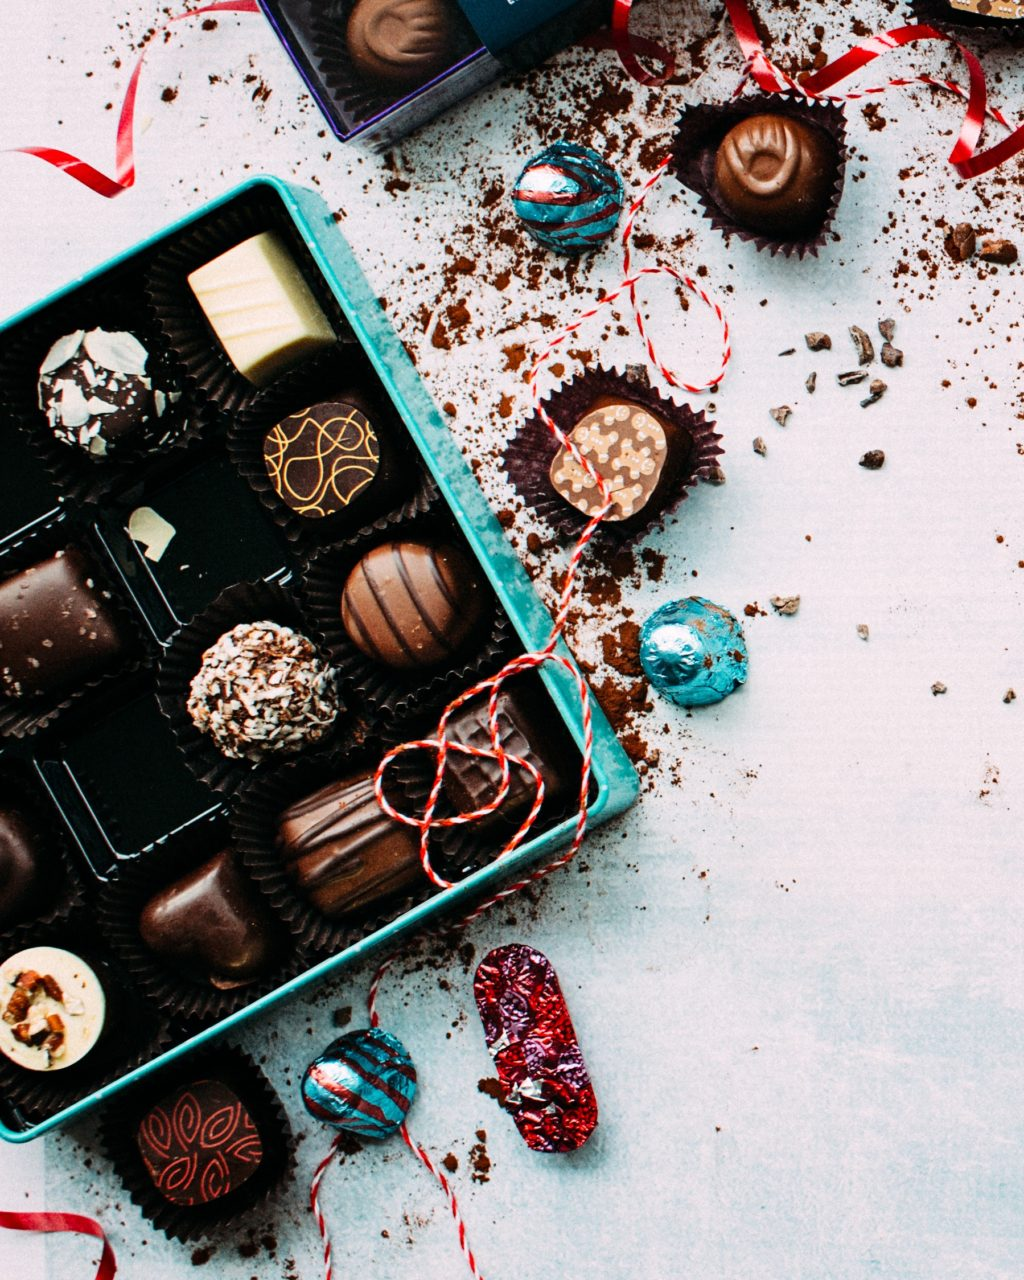 box of chocolates you can still eat if you're trying to lose weight and keep it off